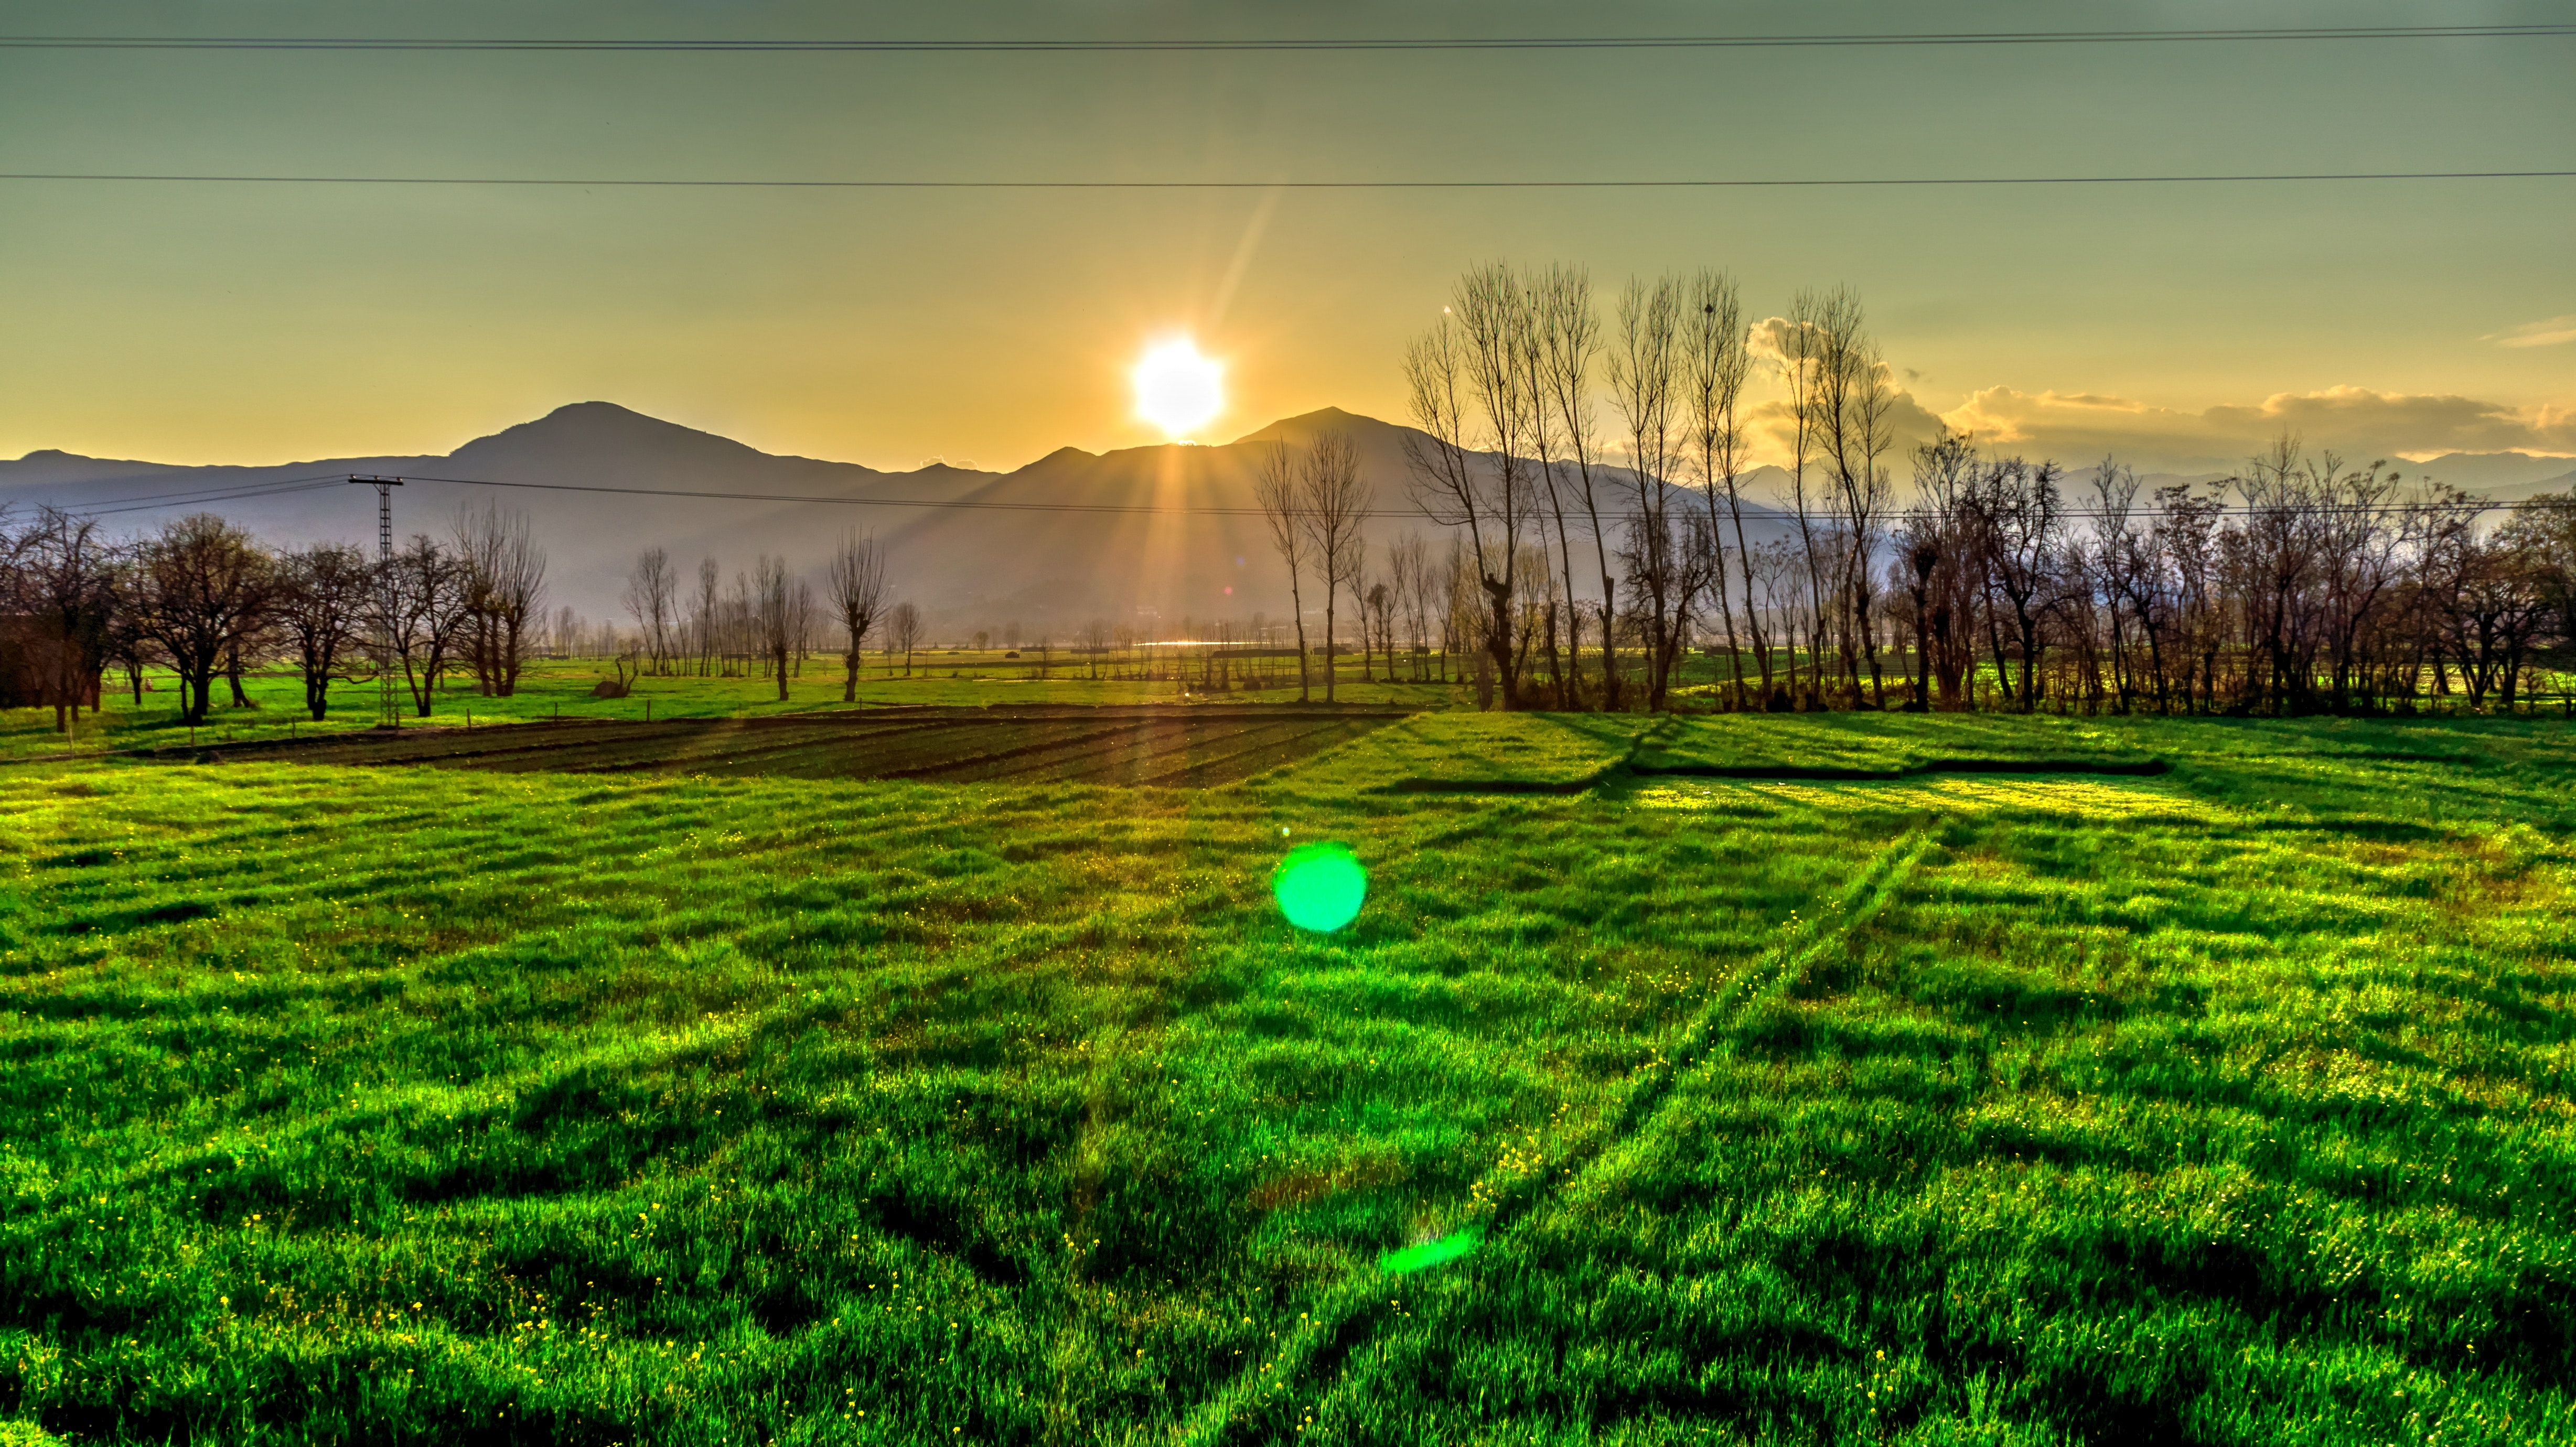 Golden Hour View on the Mountain, Agriculture, Peaceful, Sunset, Sunrise, HQ Photo